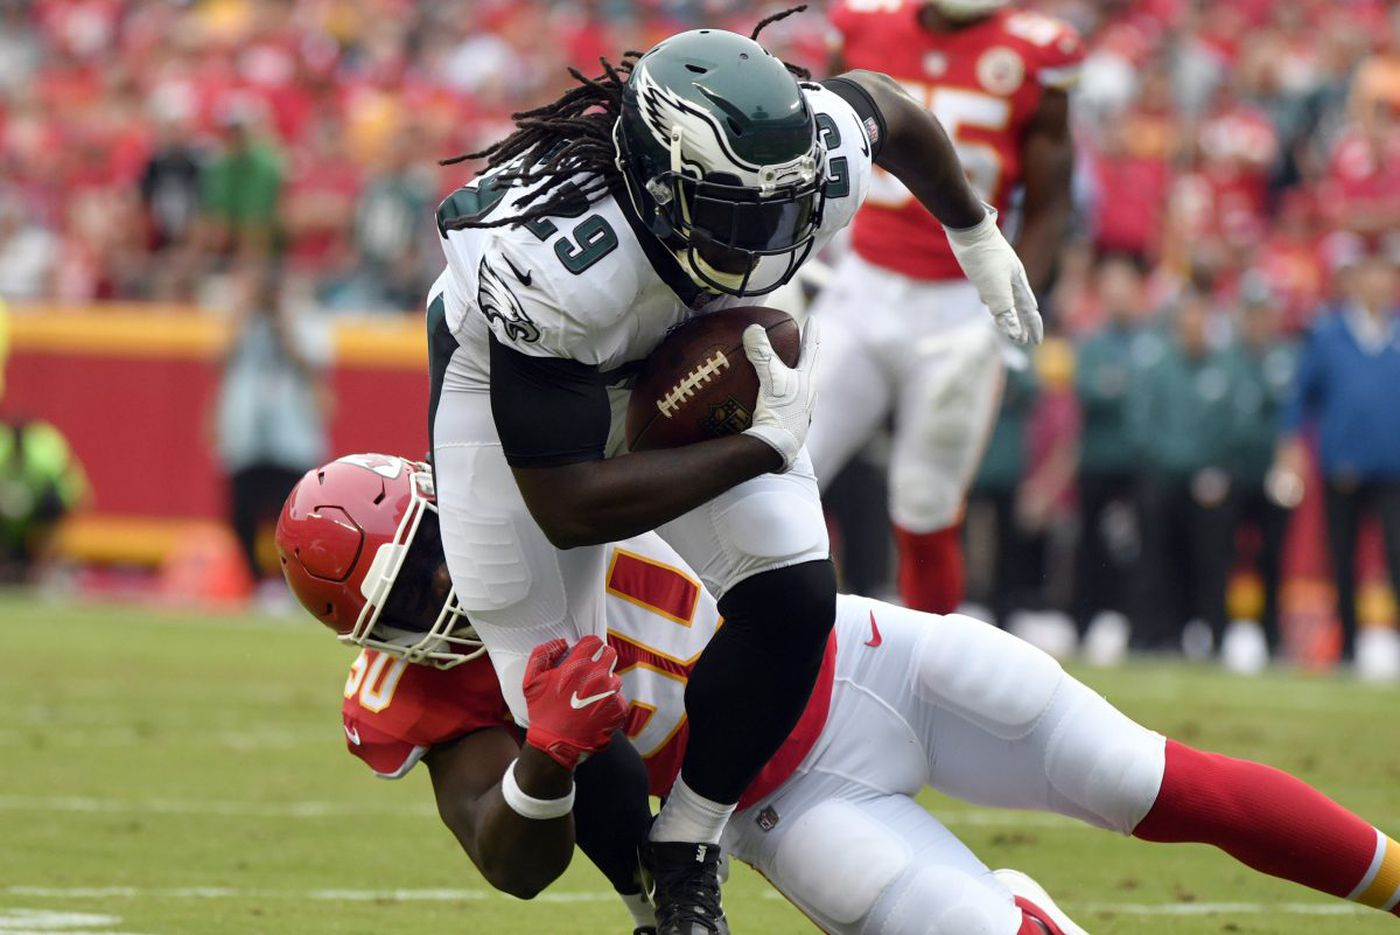 Eagles-Chiefs: 5 numbers that mattered | Domowitch